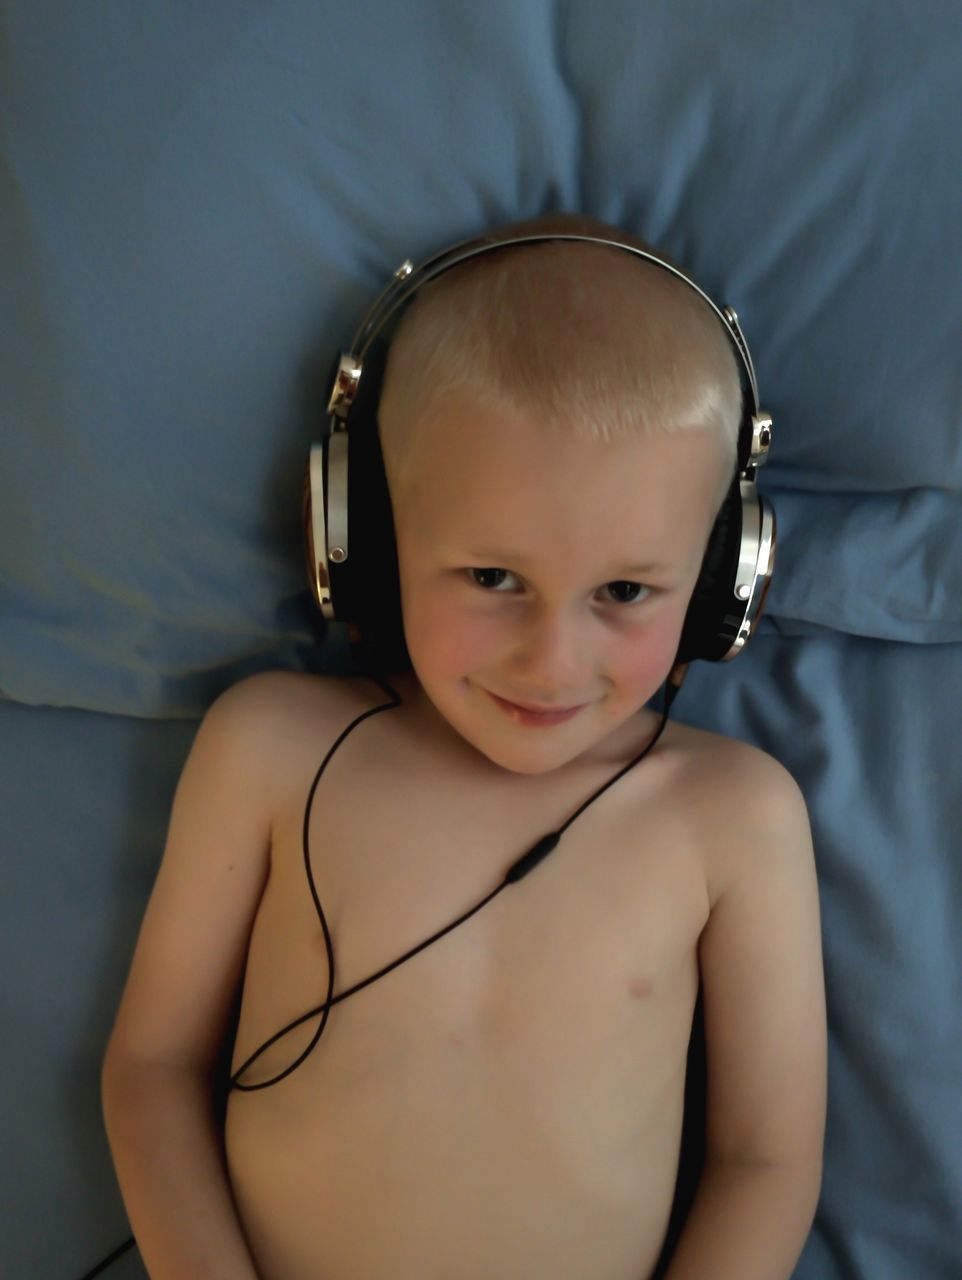 High Angle Portrait Of Smiling Shirtless Boy Wearing Headphones On Bed